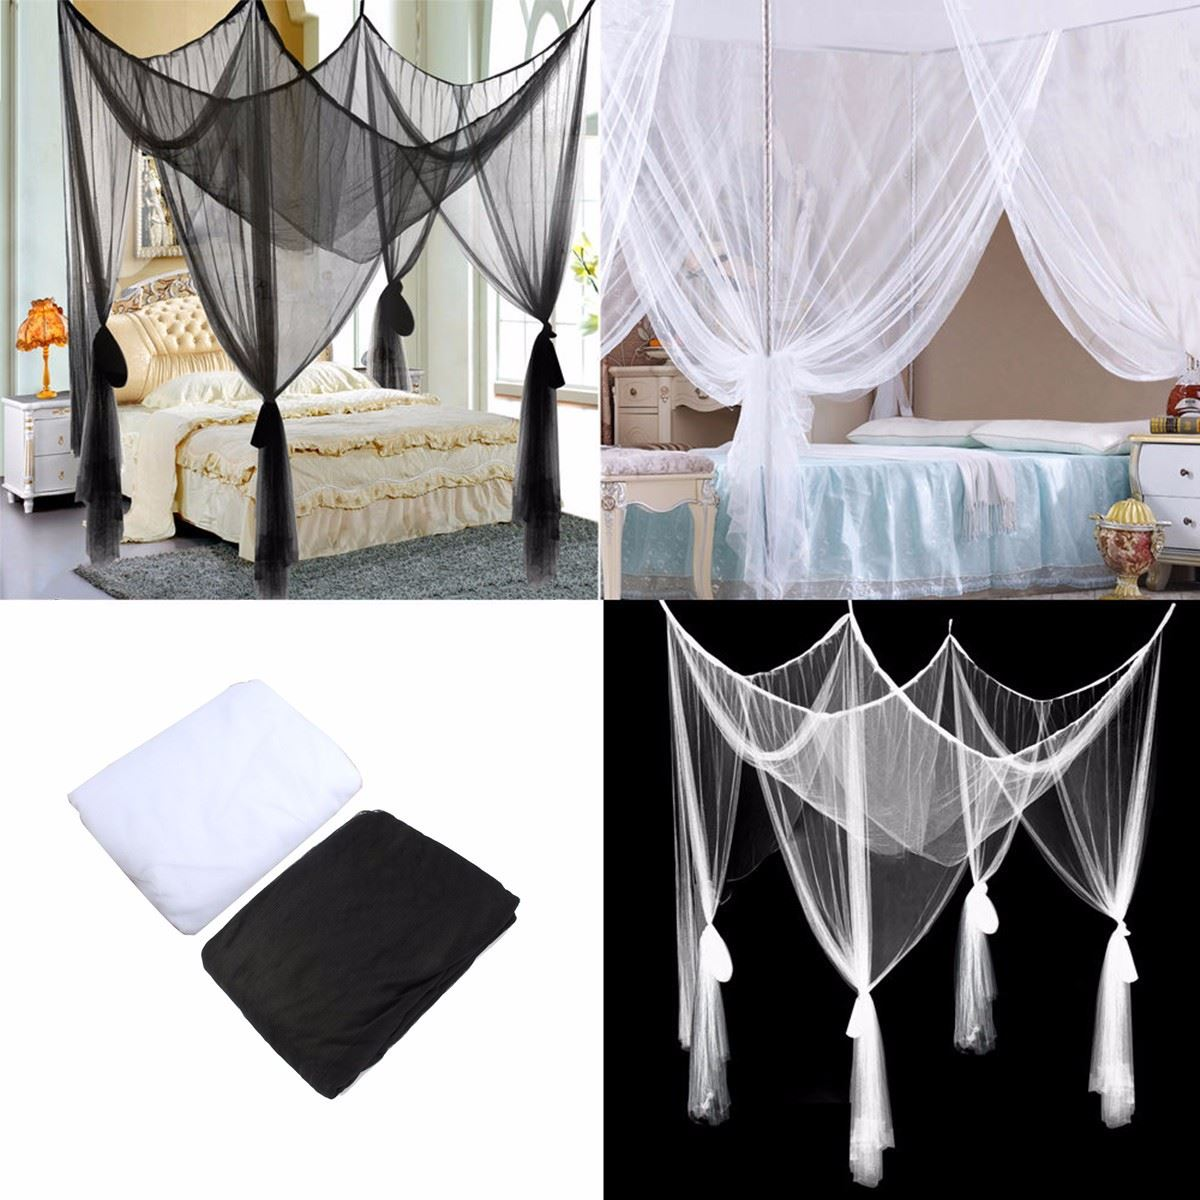 White Mosquito Net 4 Post Poster Bed Canopy Four Corner Mosquito Insect Bug Net Mesh Full King Size nylon polyester Best Price-in Door u0026 Window Grates from ... & White Mosquito Net 4 Post Poster Bed Canopy Four Corner Mosquito ...